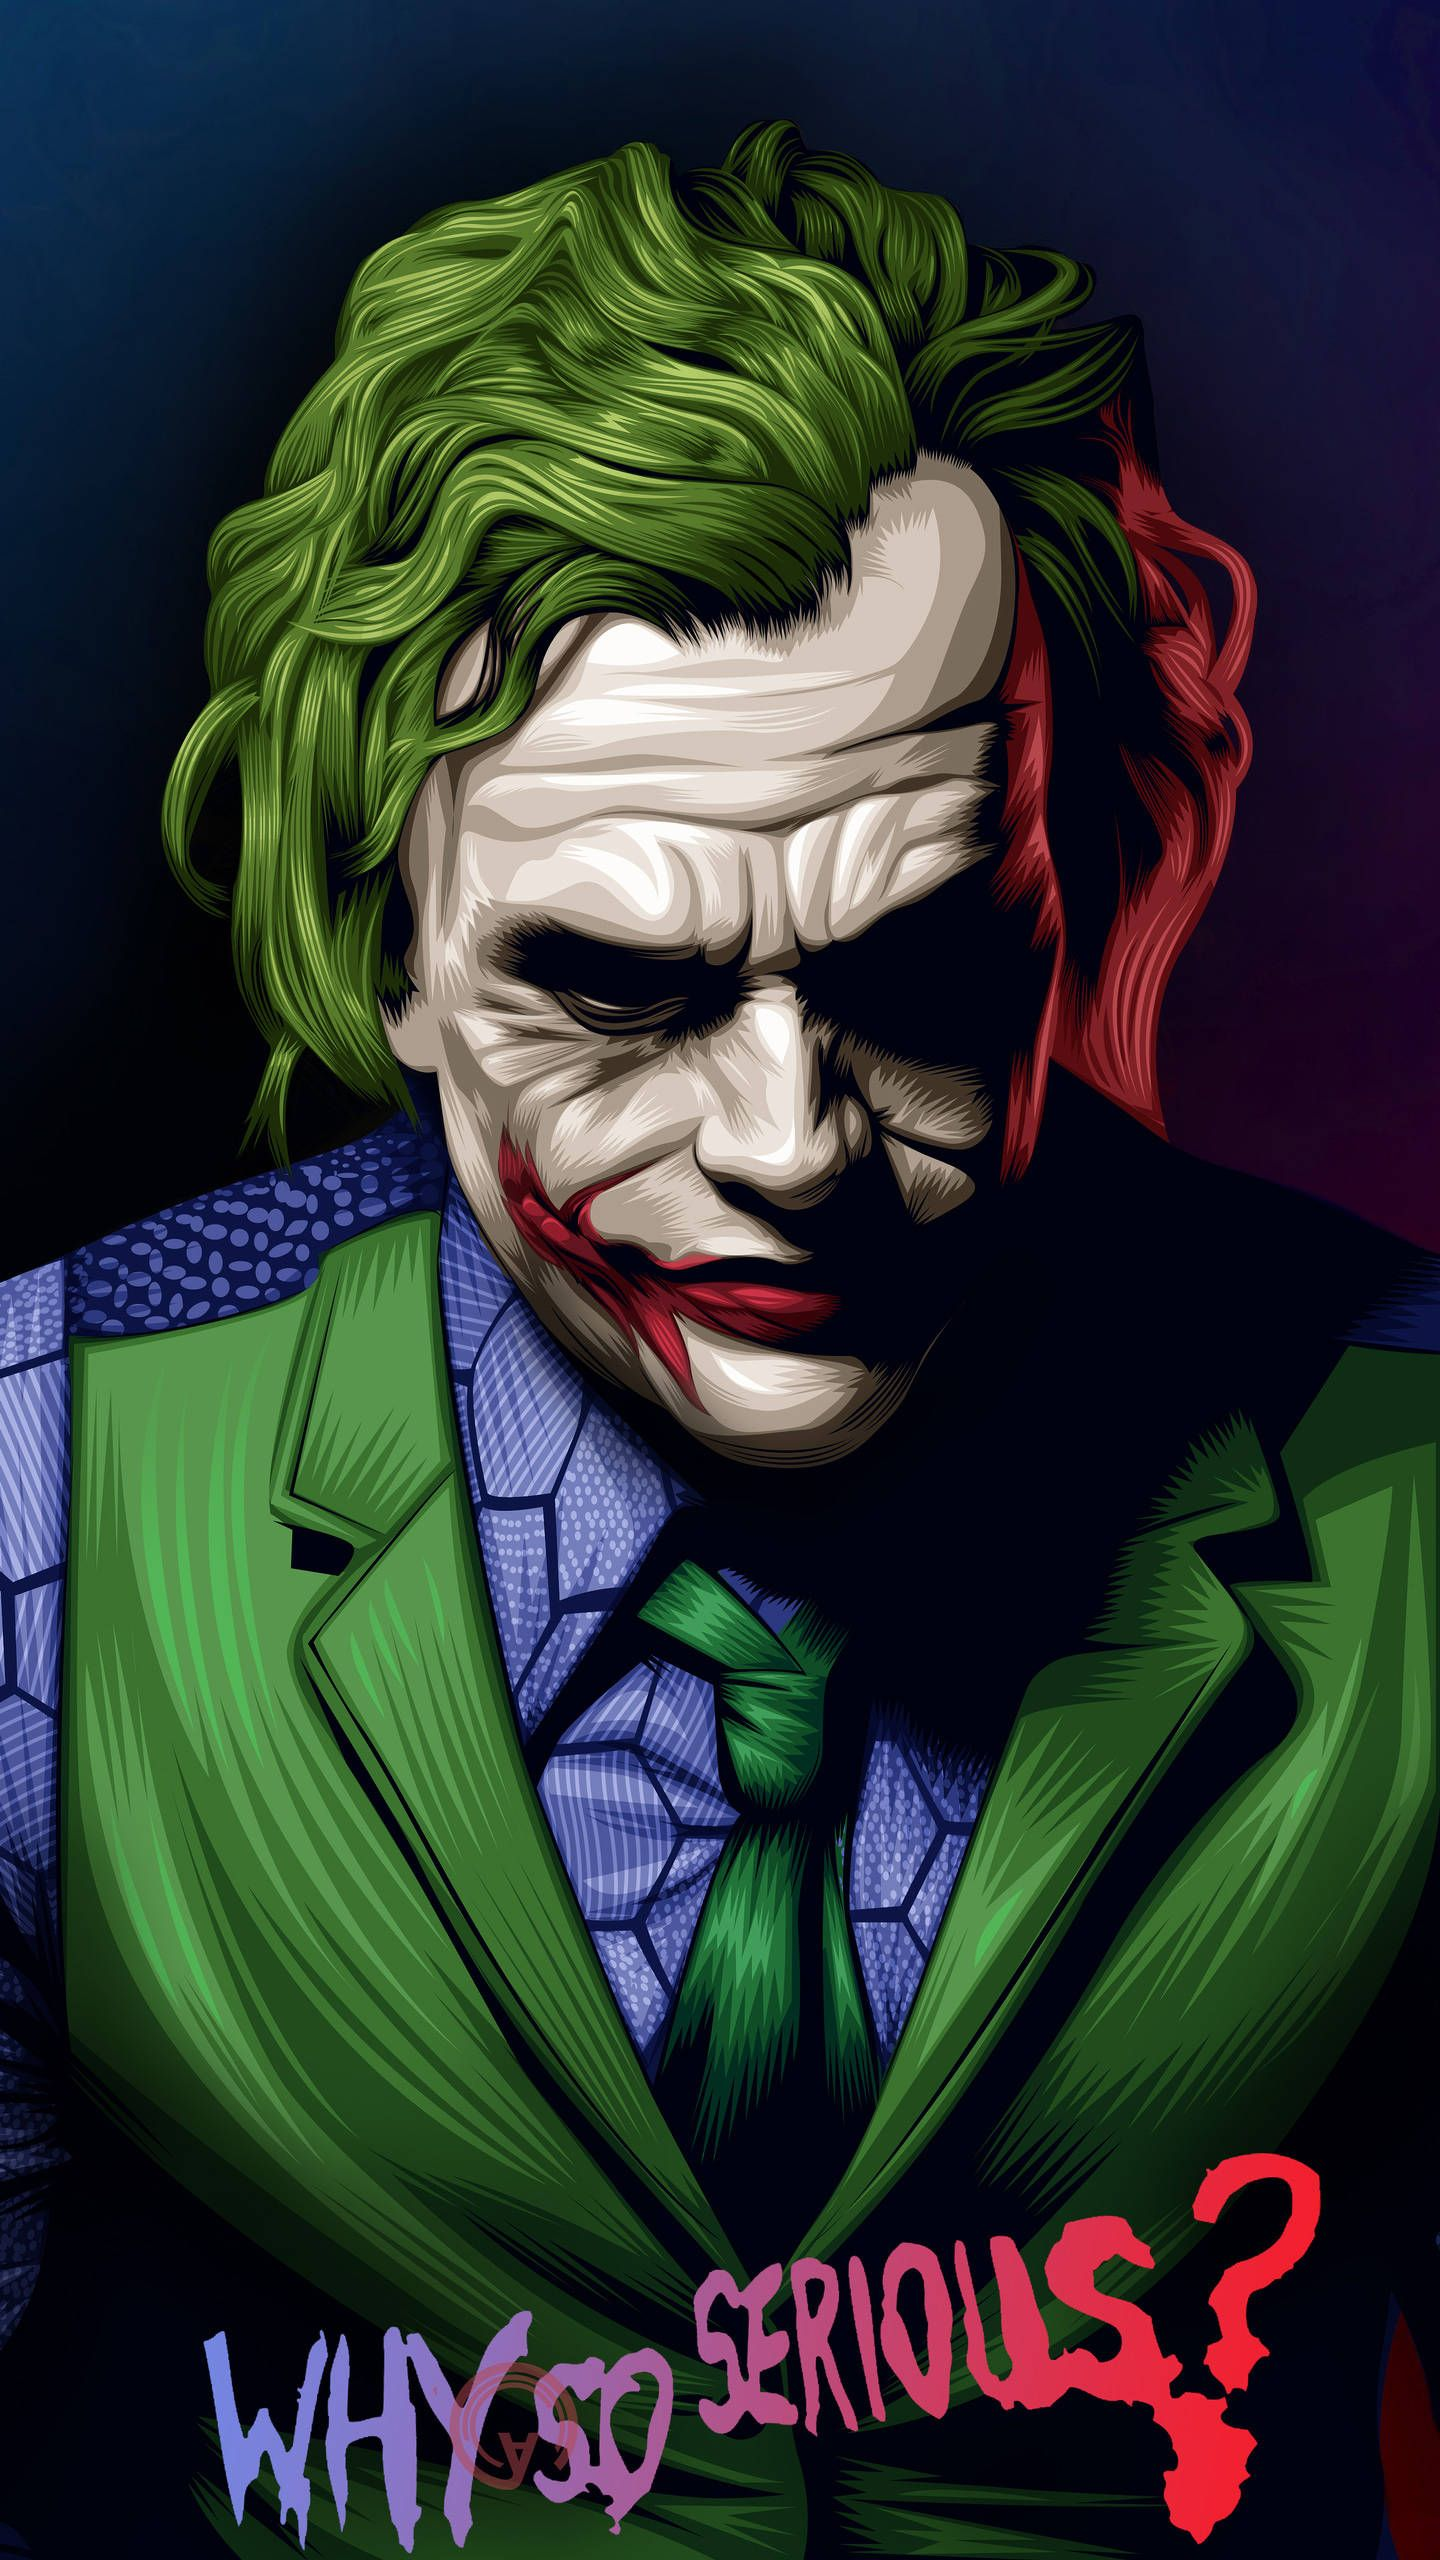 Joker Heath Ledger Illustration Hd Wallpaper In 2020 With Images